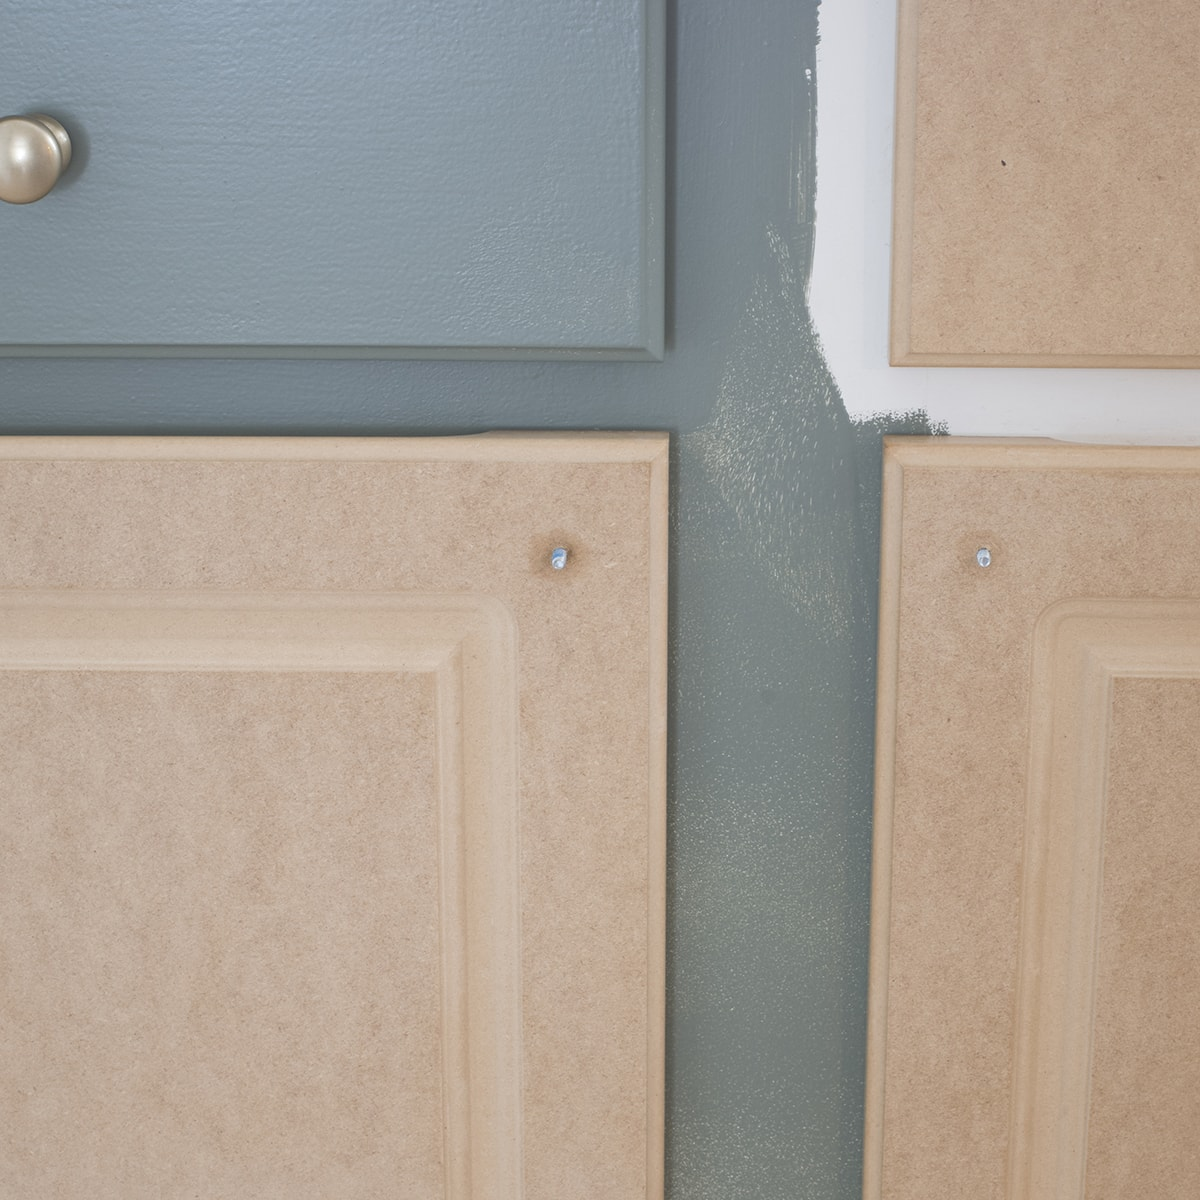 peeling laminate kitchen cabinets and painting them